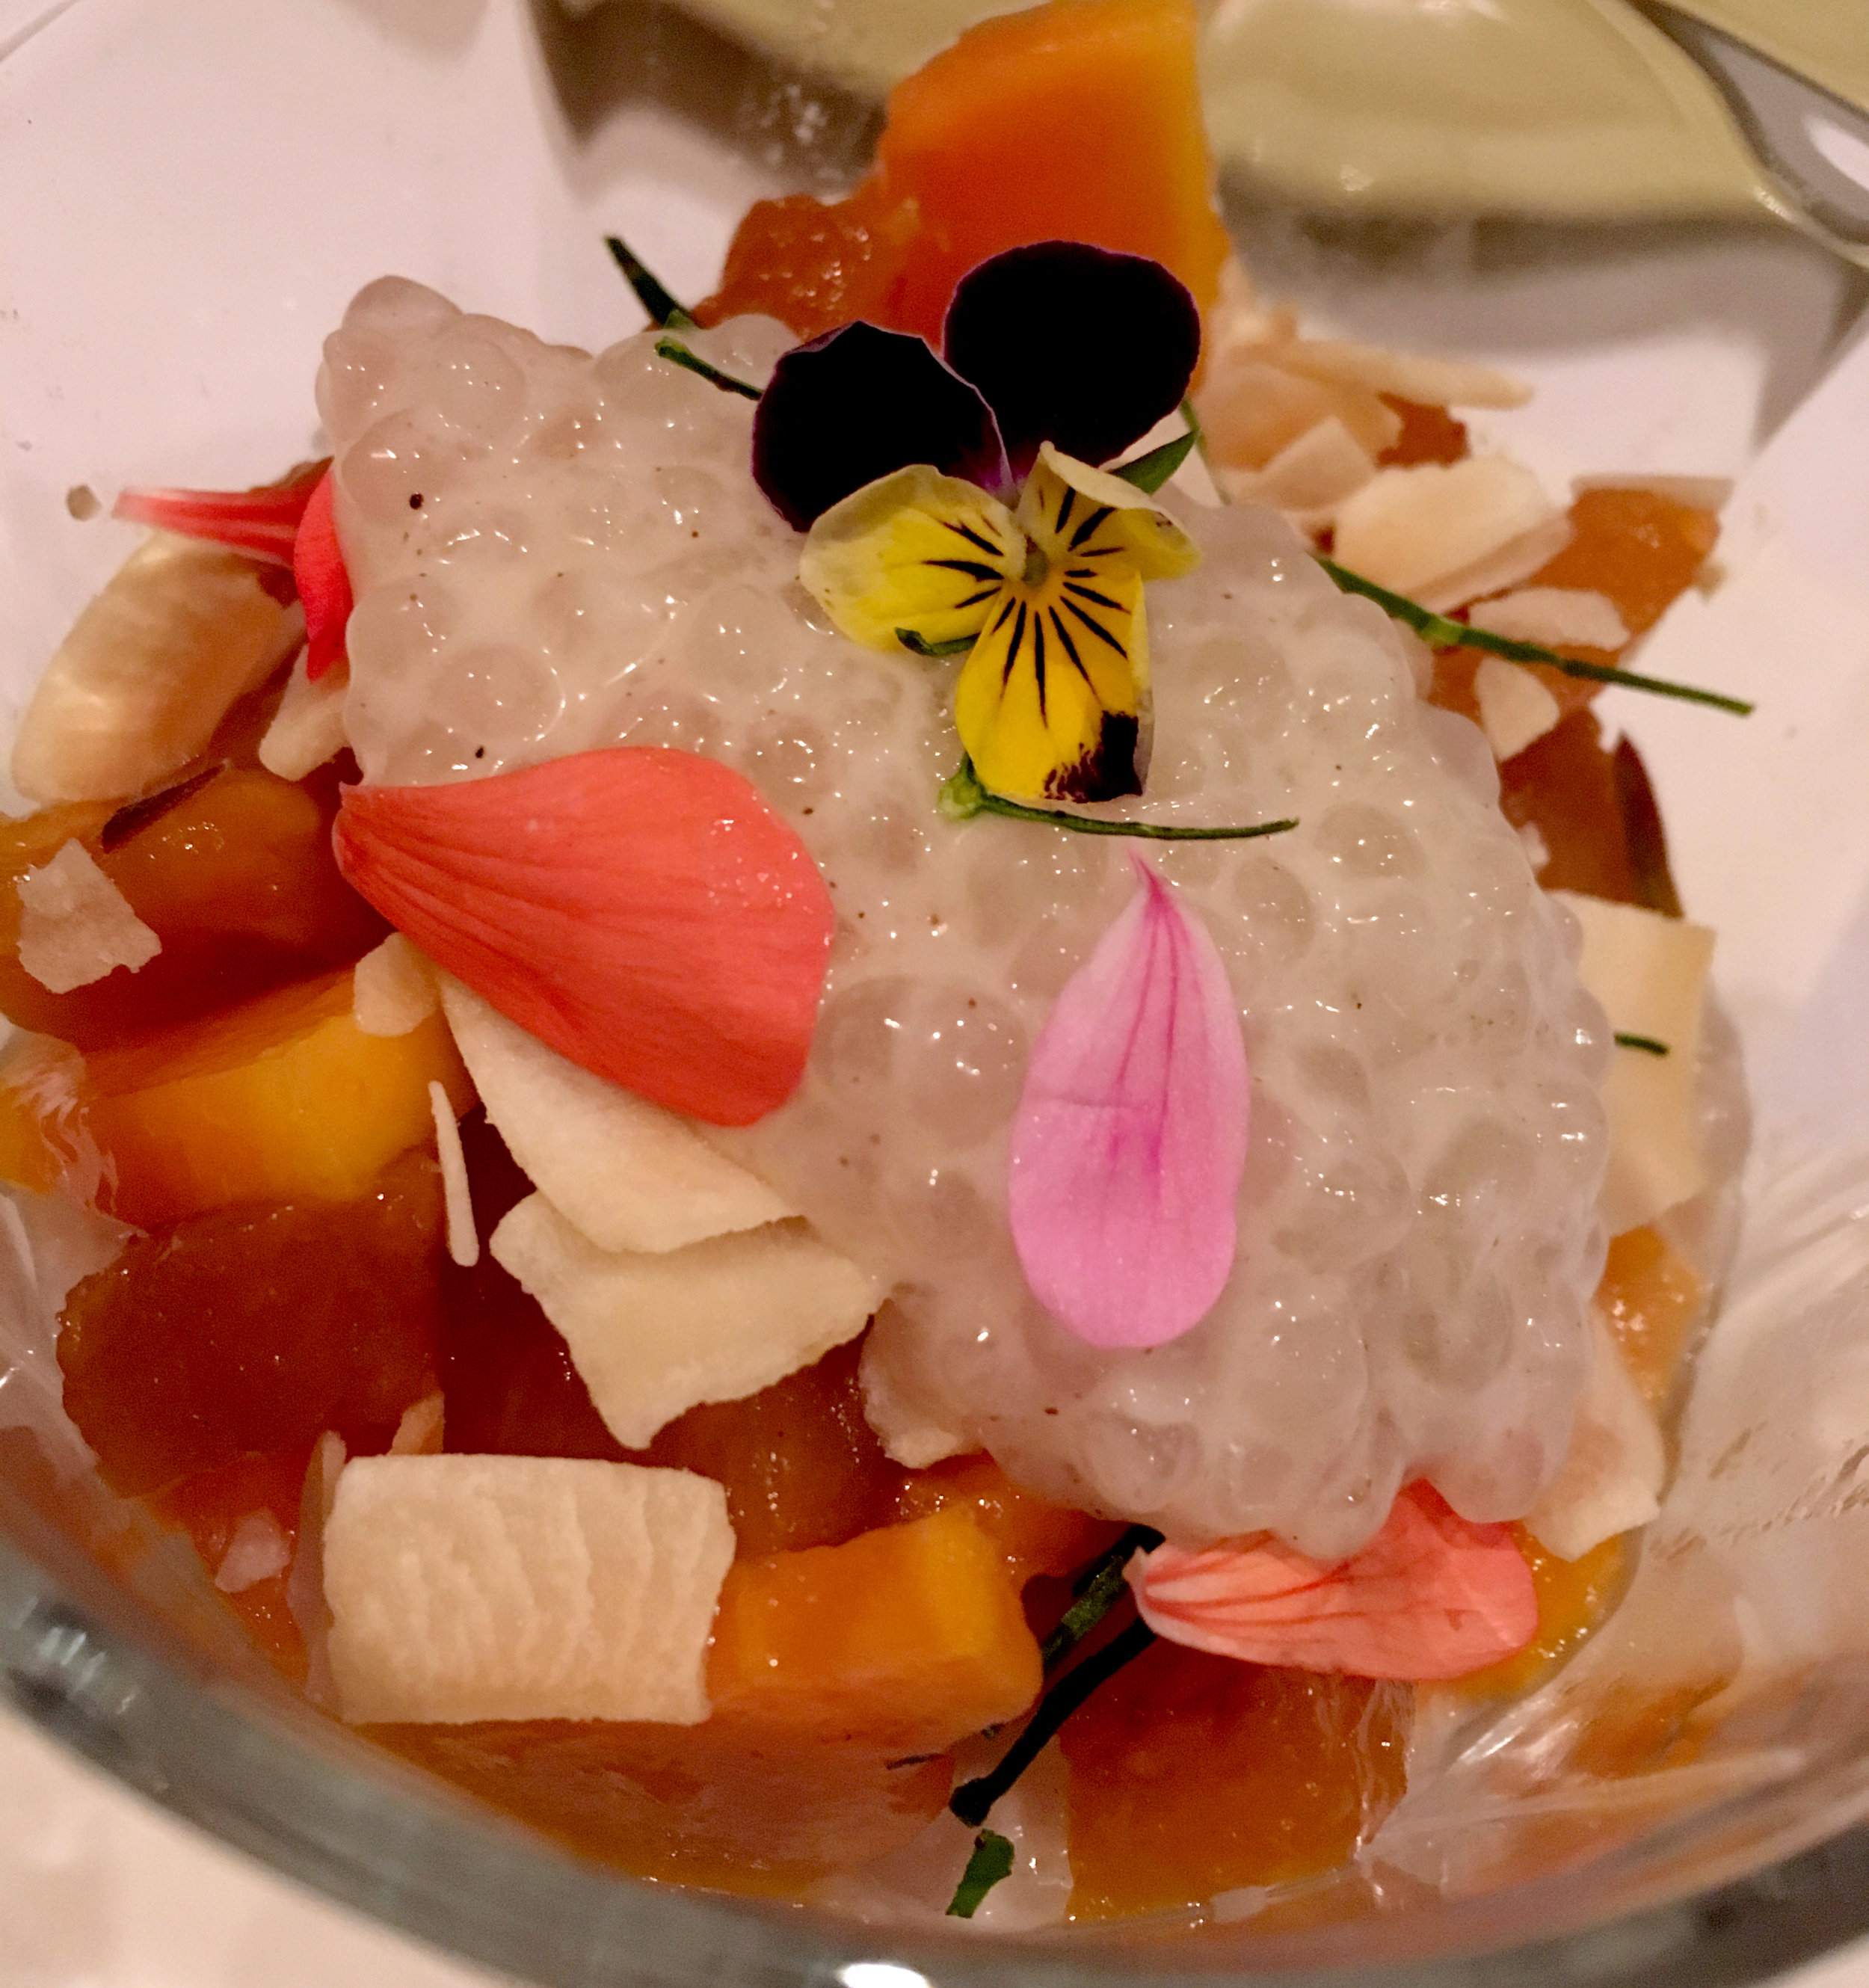 Amazing dessert at Palette Dining with homegrown flowers.